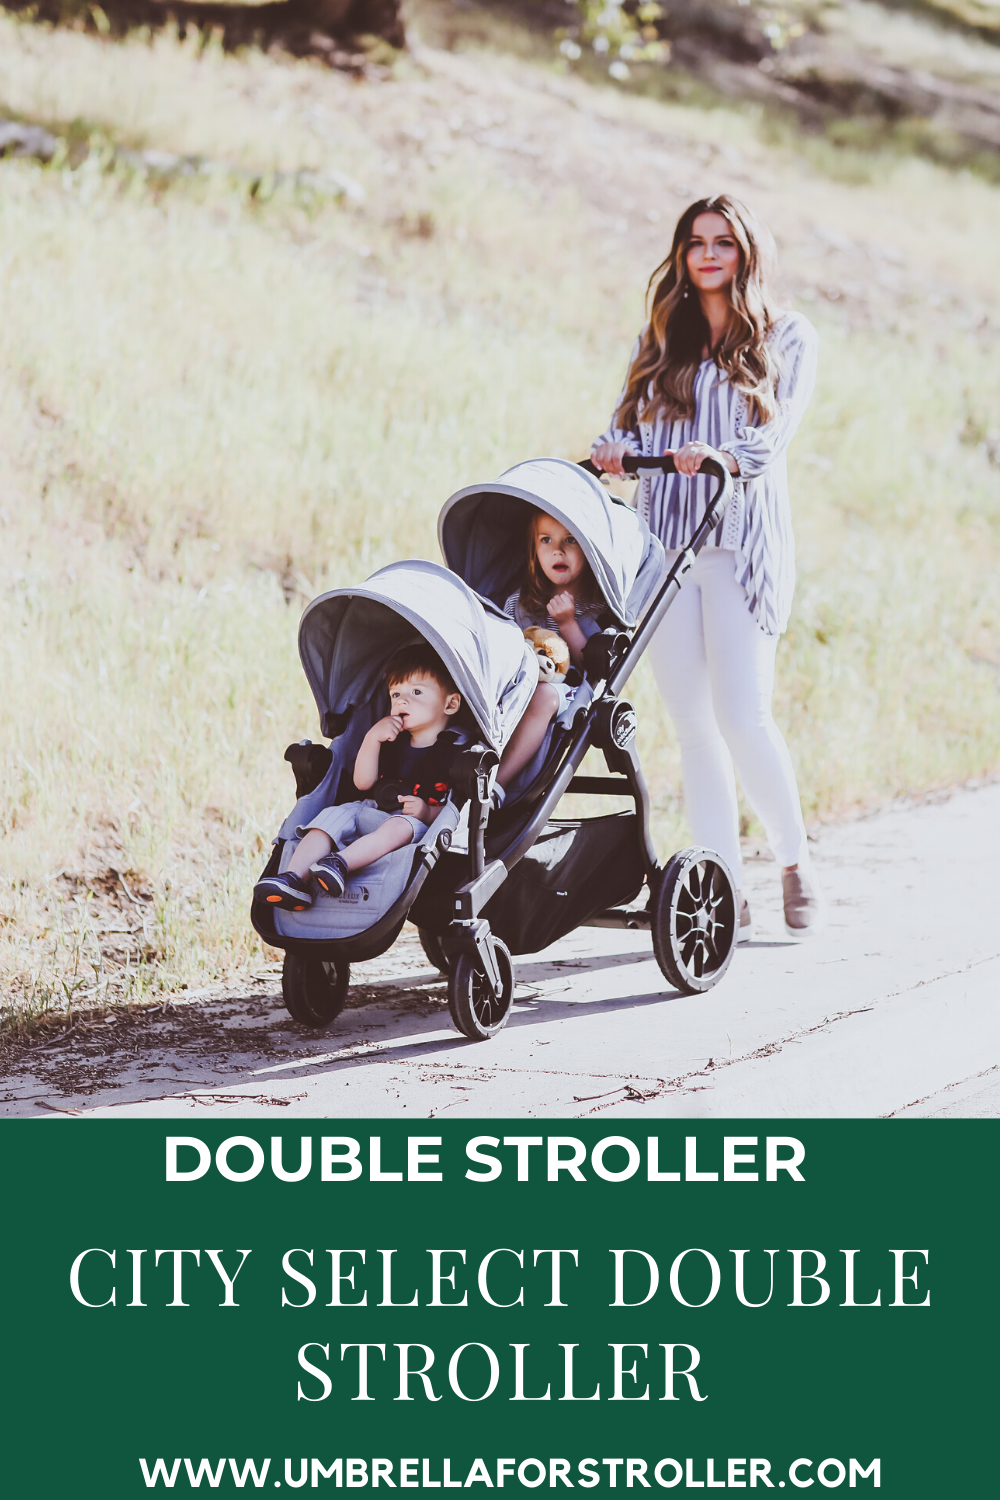 City Select Double Stroller in 2020 City select double